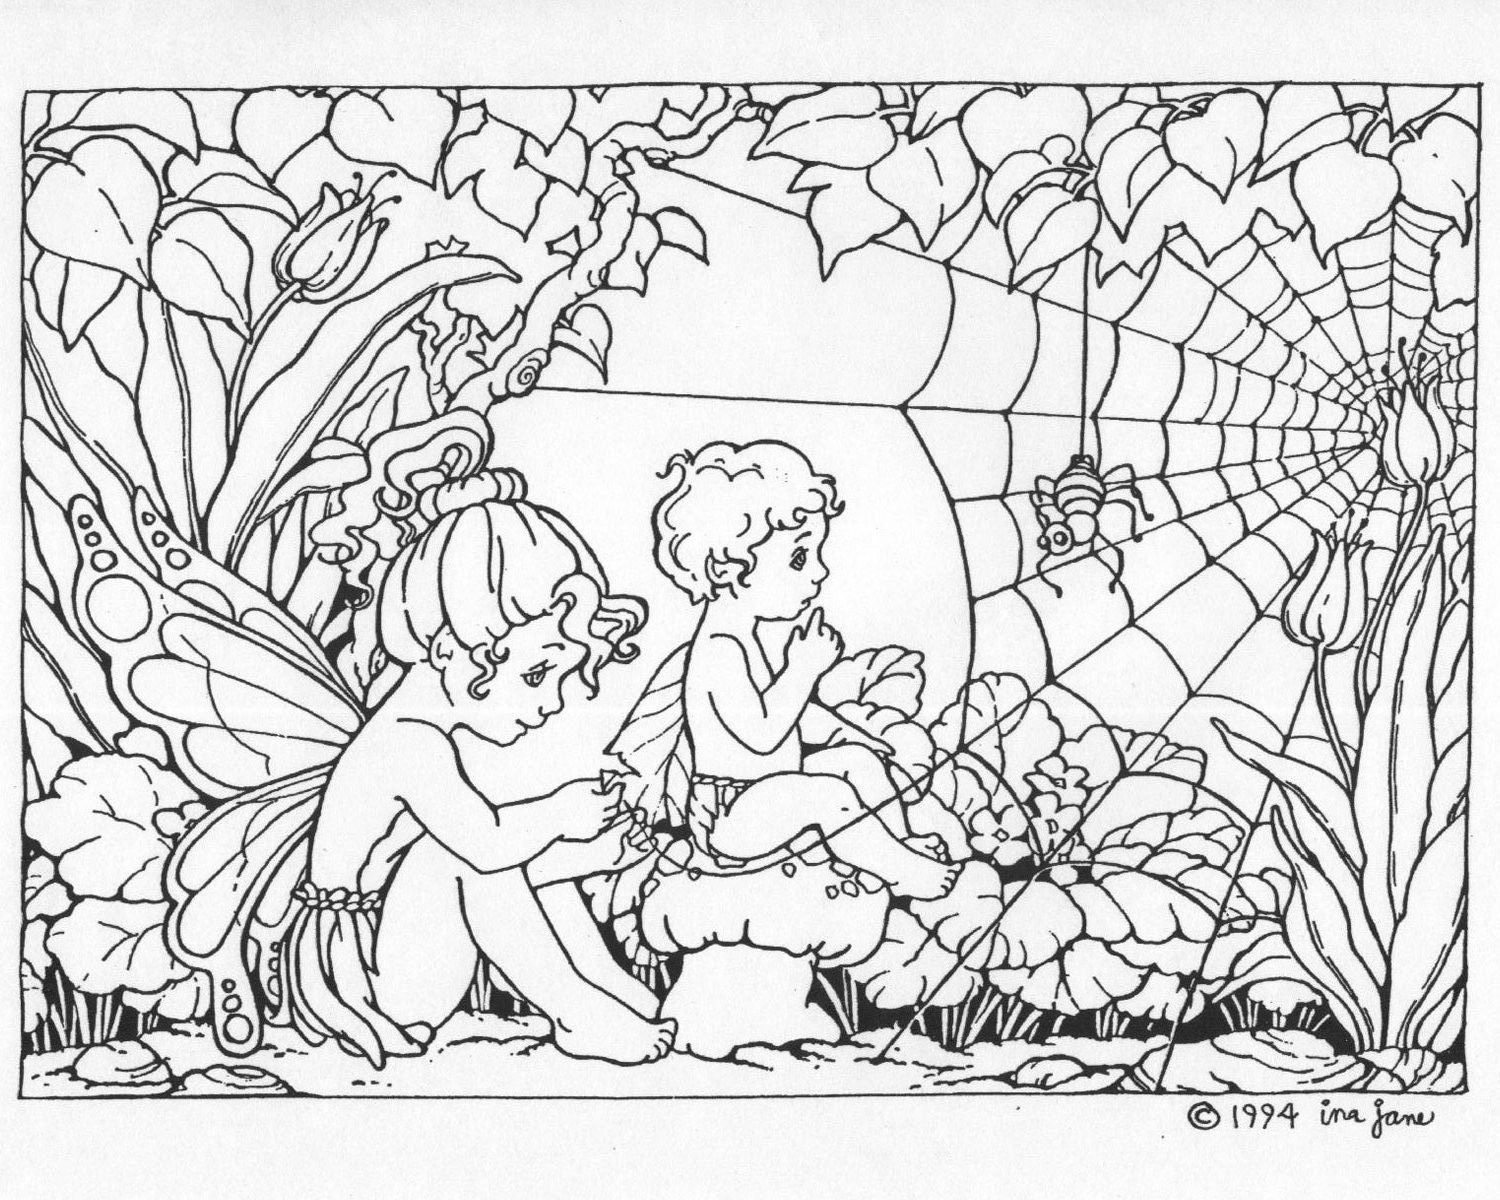 Detail goth fairy coloring page printable coloring pages - Free Printable Fairy Coloring Pages For Adults View Coloring Page